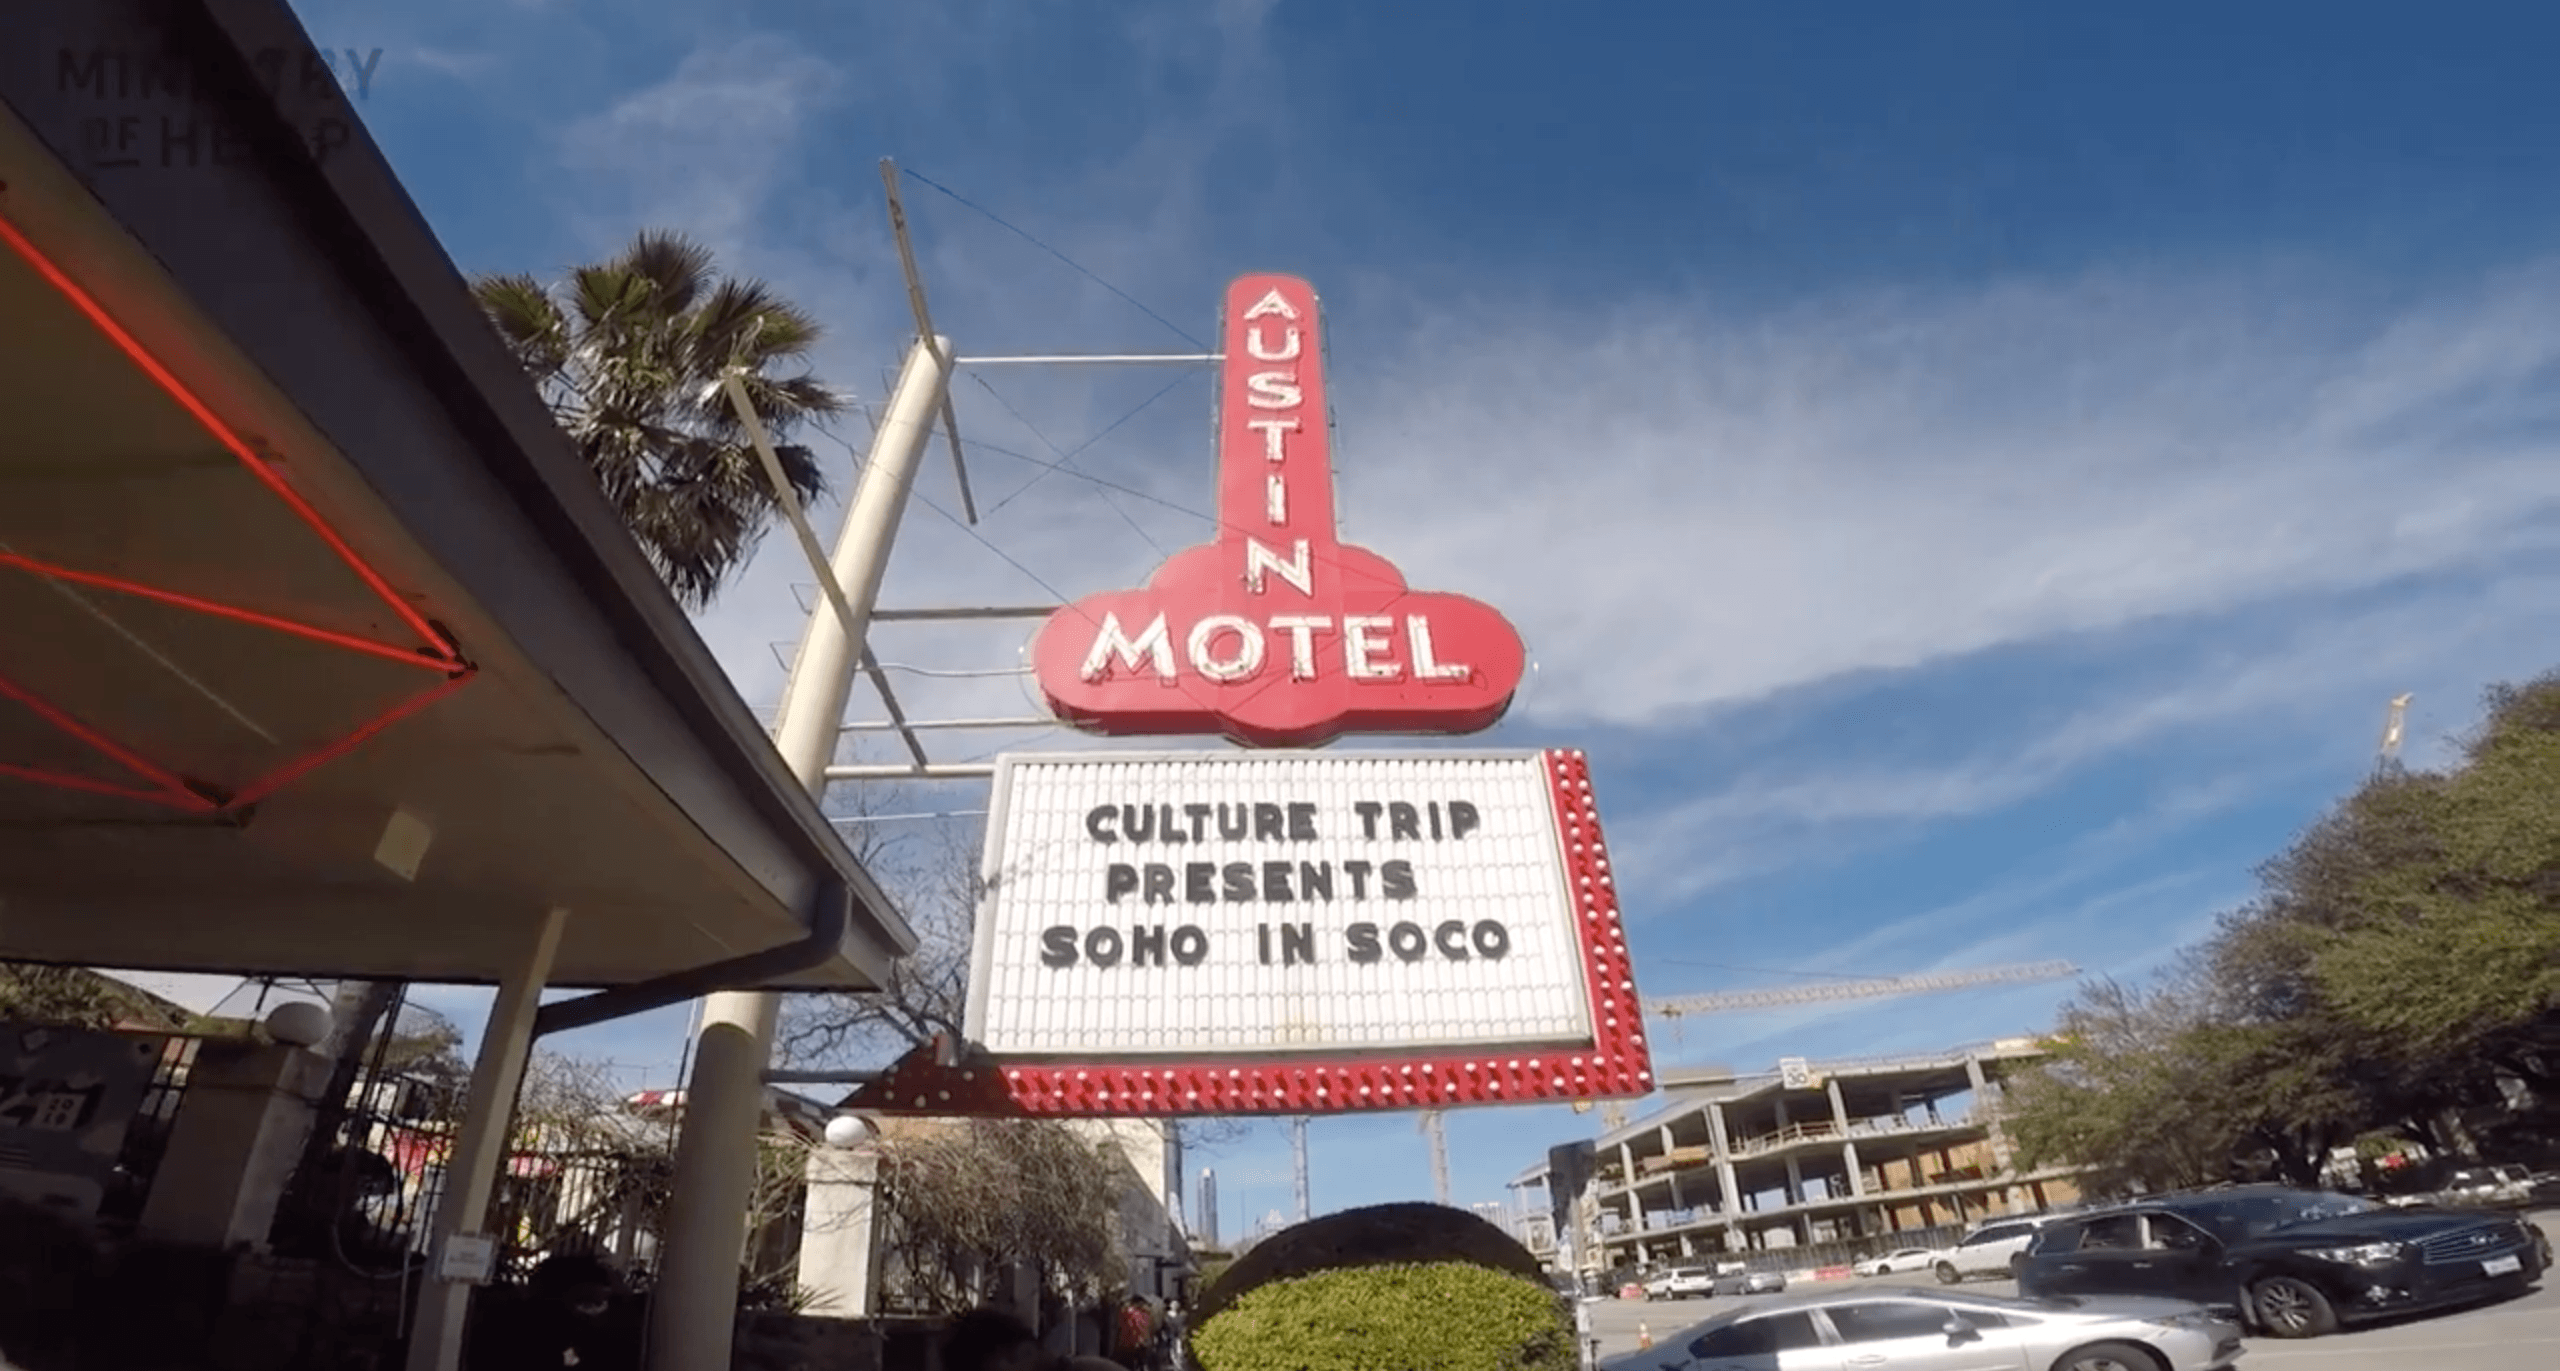 We got CBD facials from two women-owned Austin, Texas businesses at SXSW during the Culture Trip activation. Photo: The sign for Austin Motel, in Austin, Texas with a marquee advertising Culture Trip Presents SoHo in SoCo.